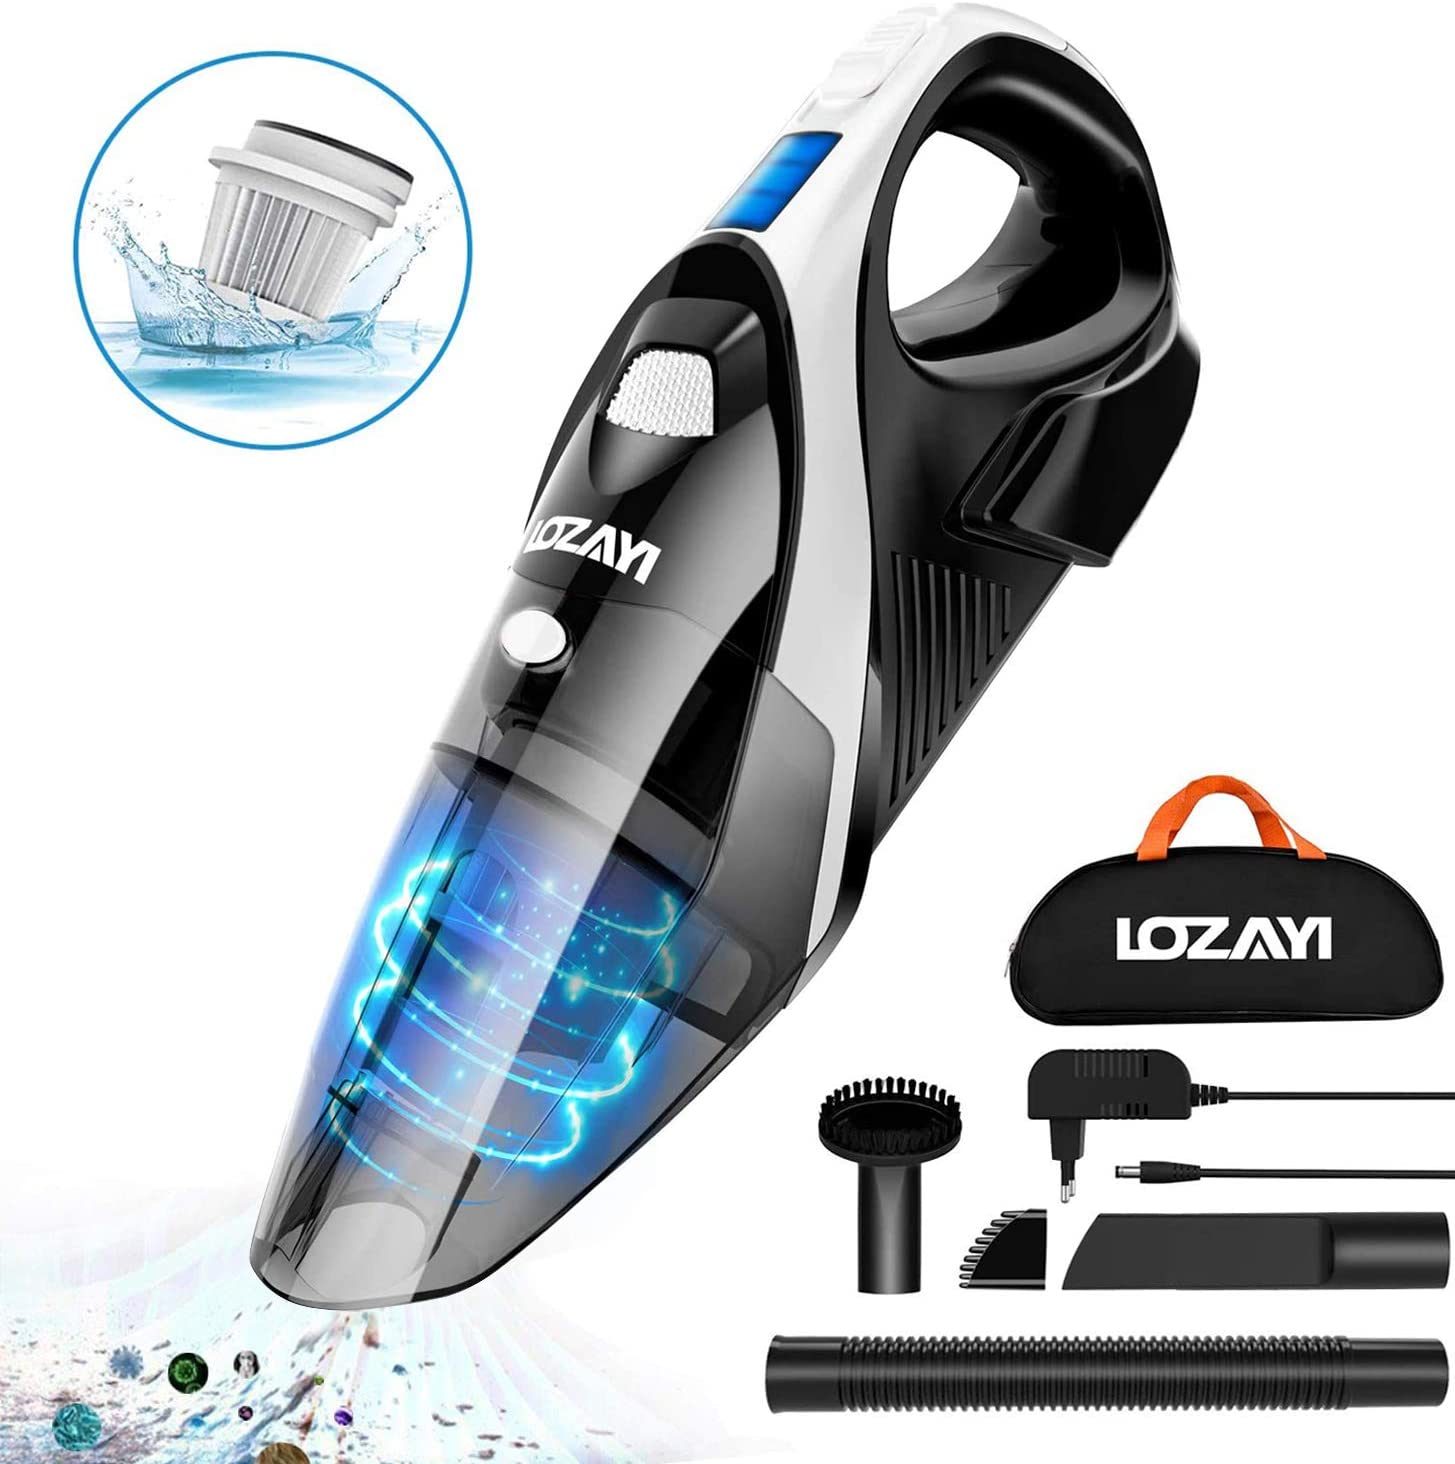 Handheld Vacuum, LOZAYI 7KPA Cordless Hand Vacuum Rechargeable with Li-ion Battery, LED Light 100W Stronger Cyclonic Suction Lightweight Wet/Dry Vacuum Cleaner for Home Pet Hair Car Cleaning